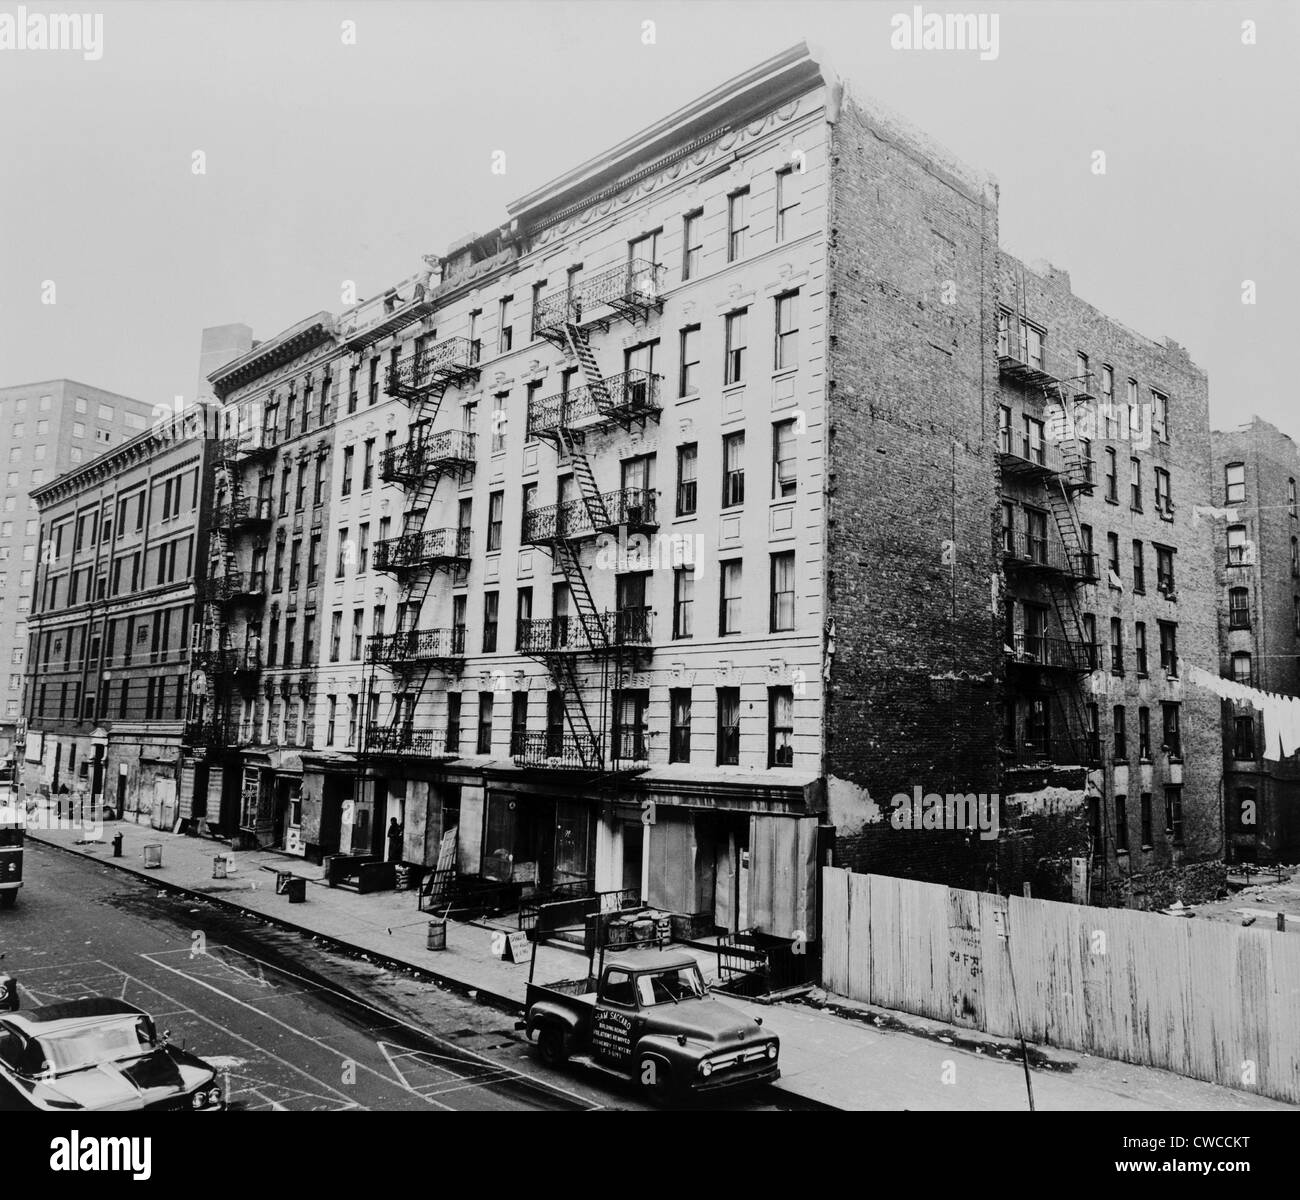 Harlem New York Apartments: East Harlem Street And Large Tenement Apartment Building